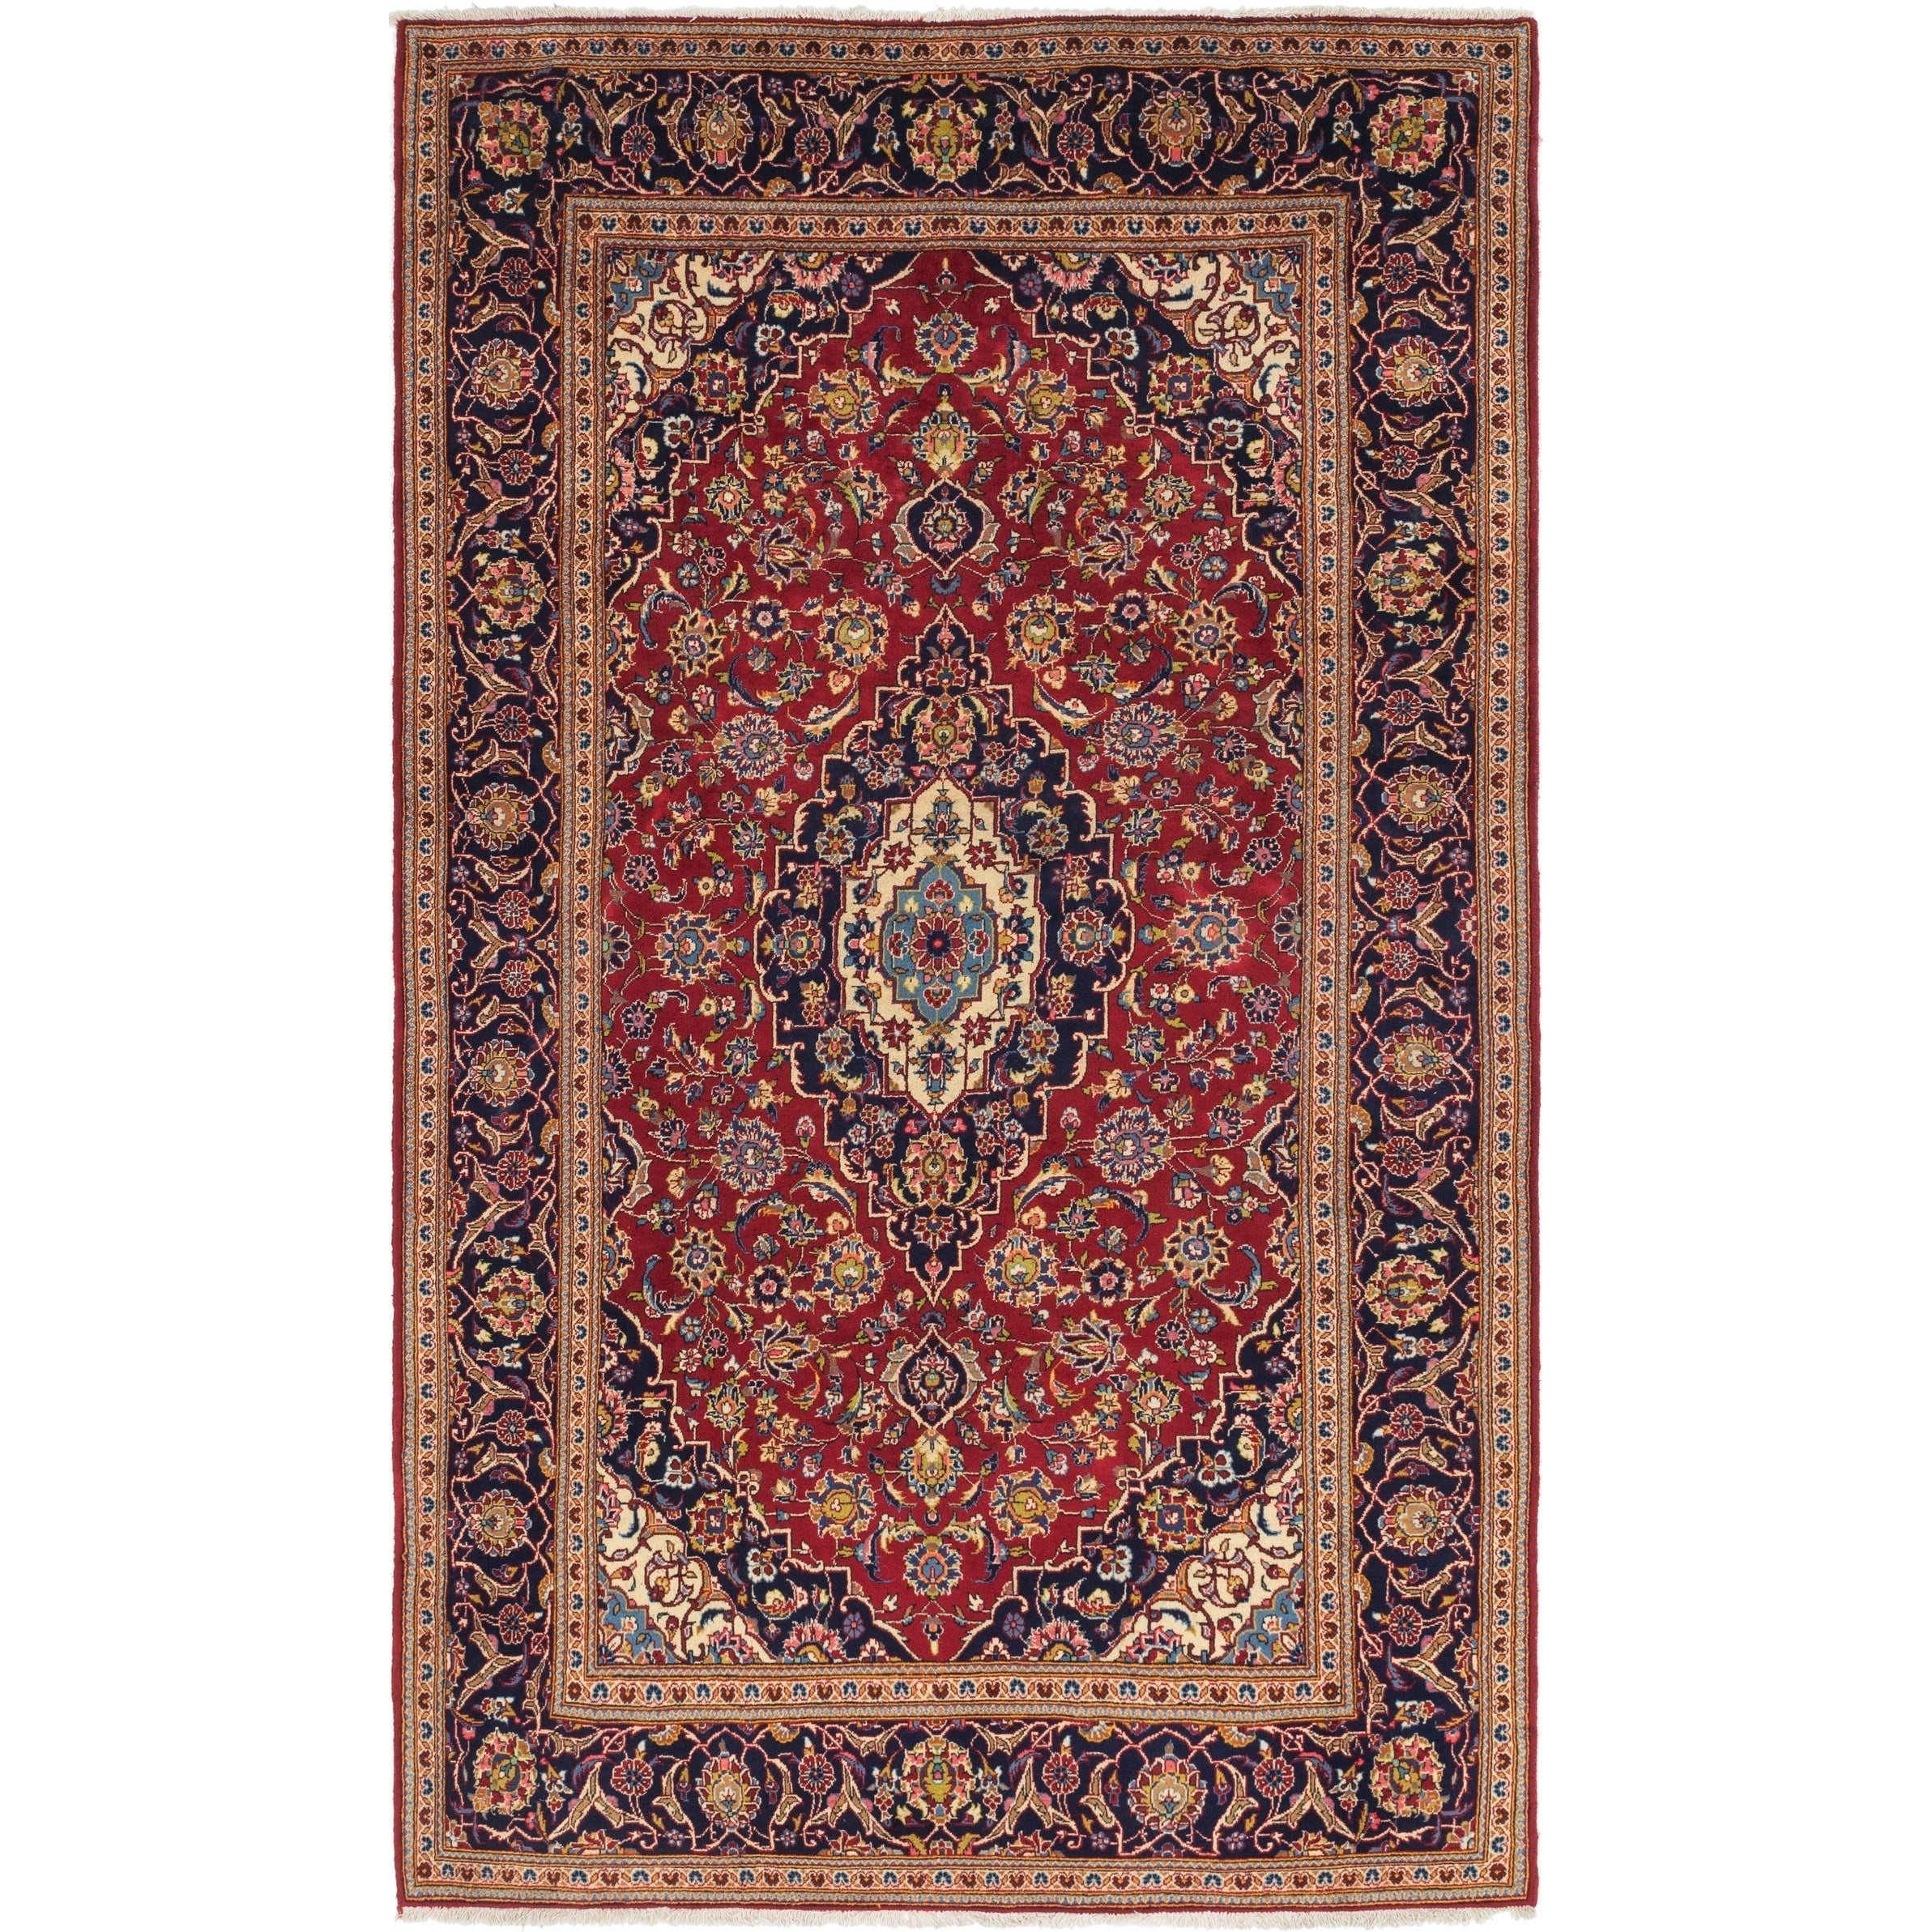 Hand Knotted Kashan Wool Area Rug - 6 6 x 11 4 (Red - 6 6 x 11 4)